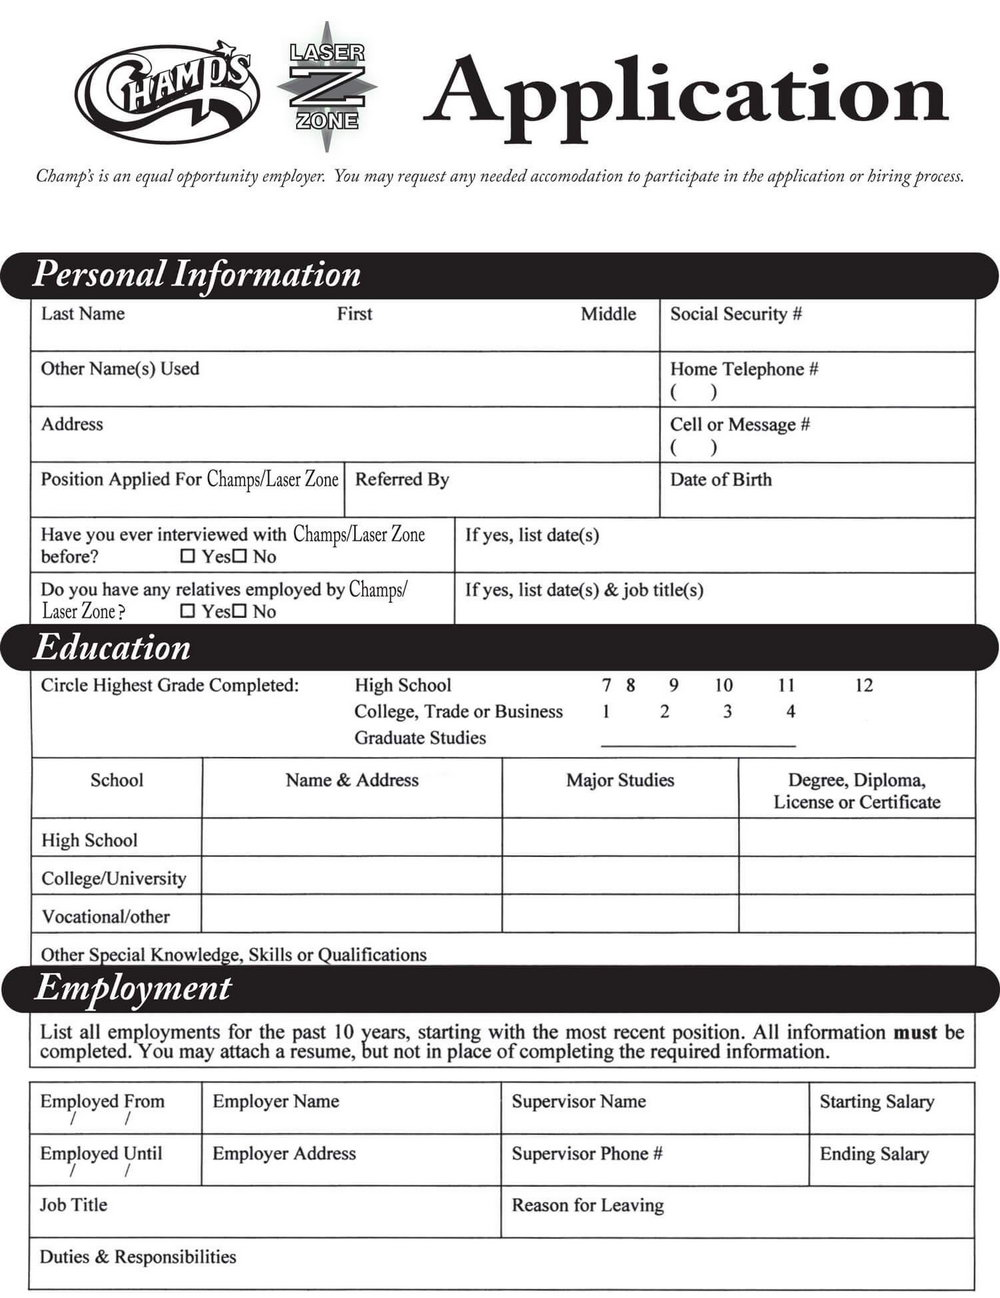 Kfc Job Application Form Canada